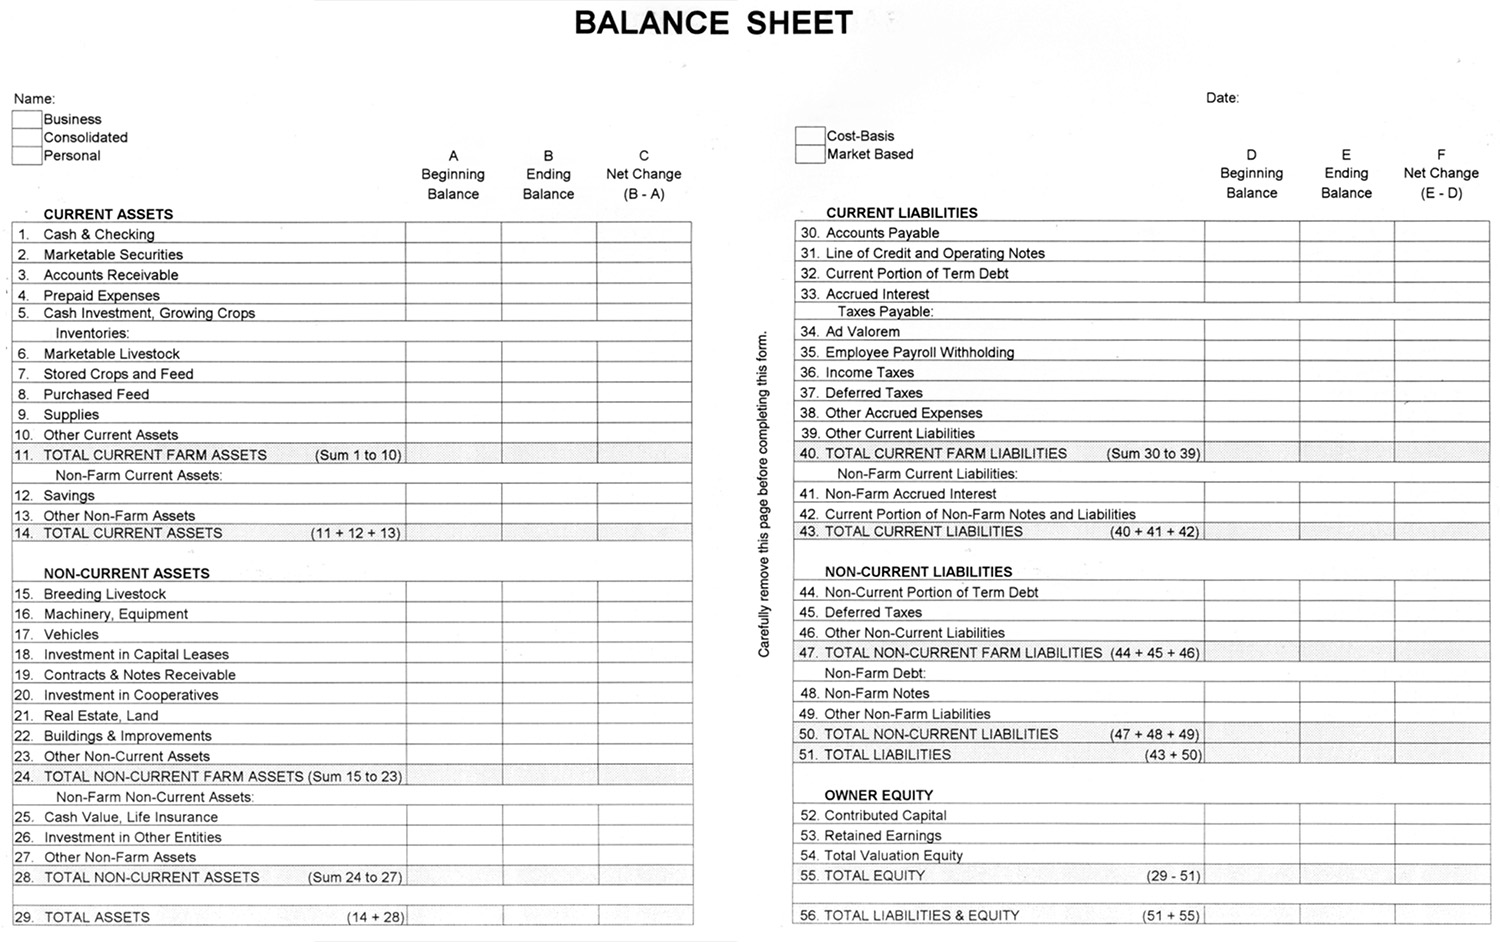 Balance Sheet | Agec 752 Developing A Balance Sheet Osu Fact Sheets